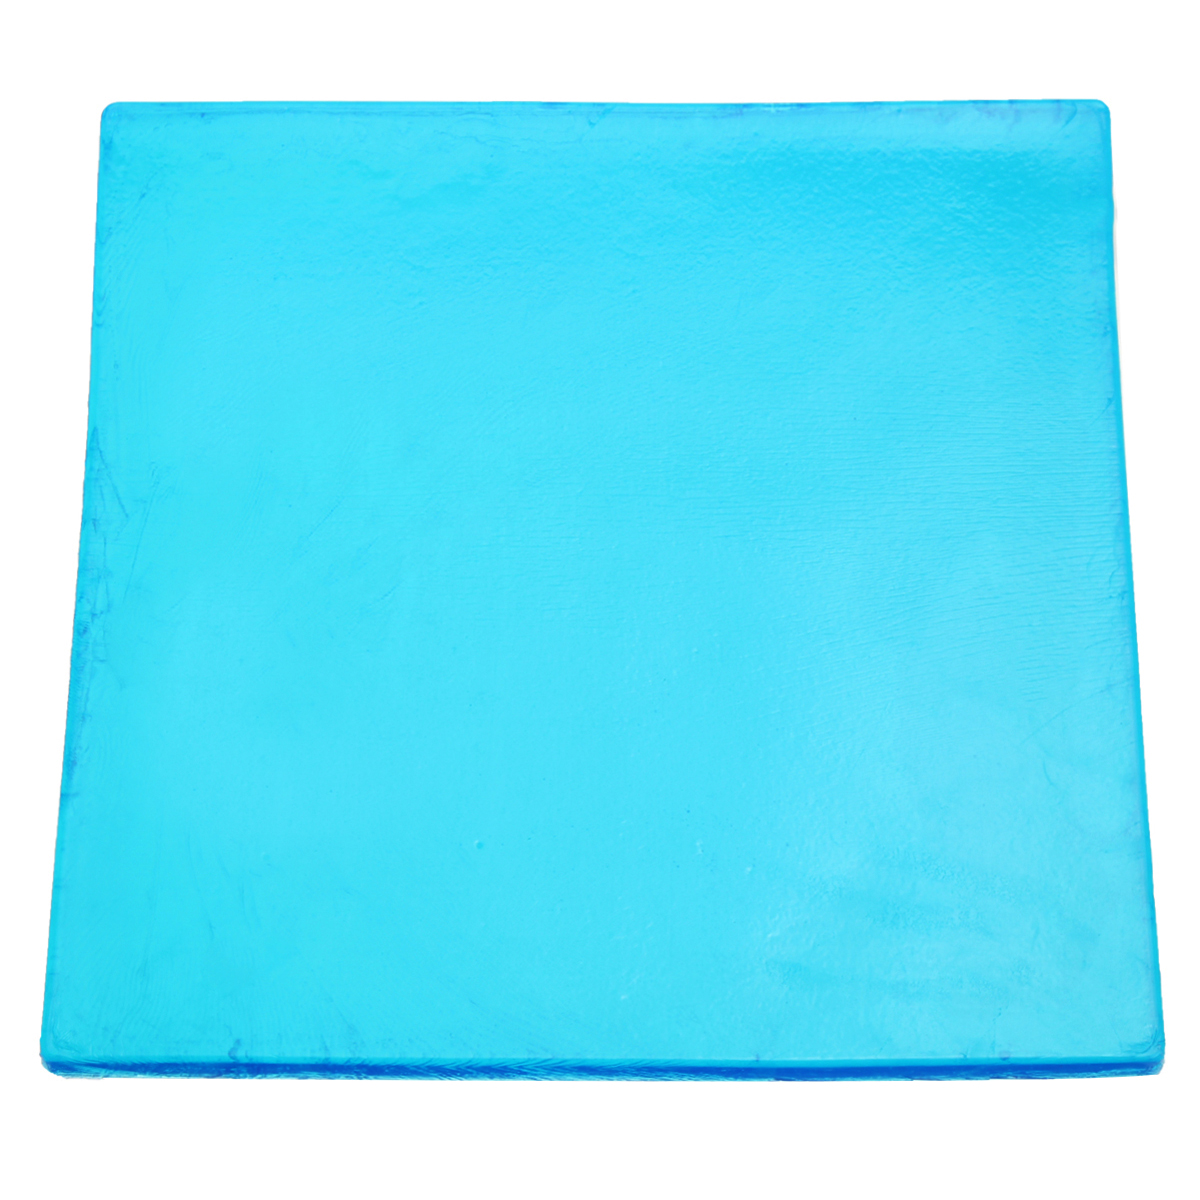 Motorcycle Seat Gel Pad Shock Absorption Mat Comfortable Soft Cushion Blue L/&6